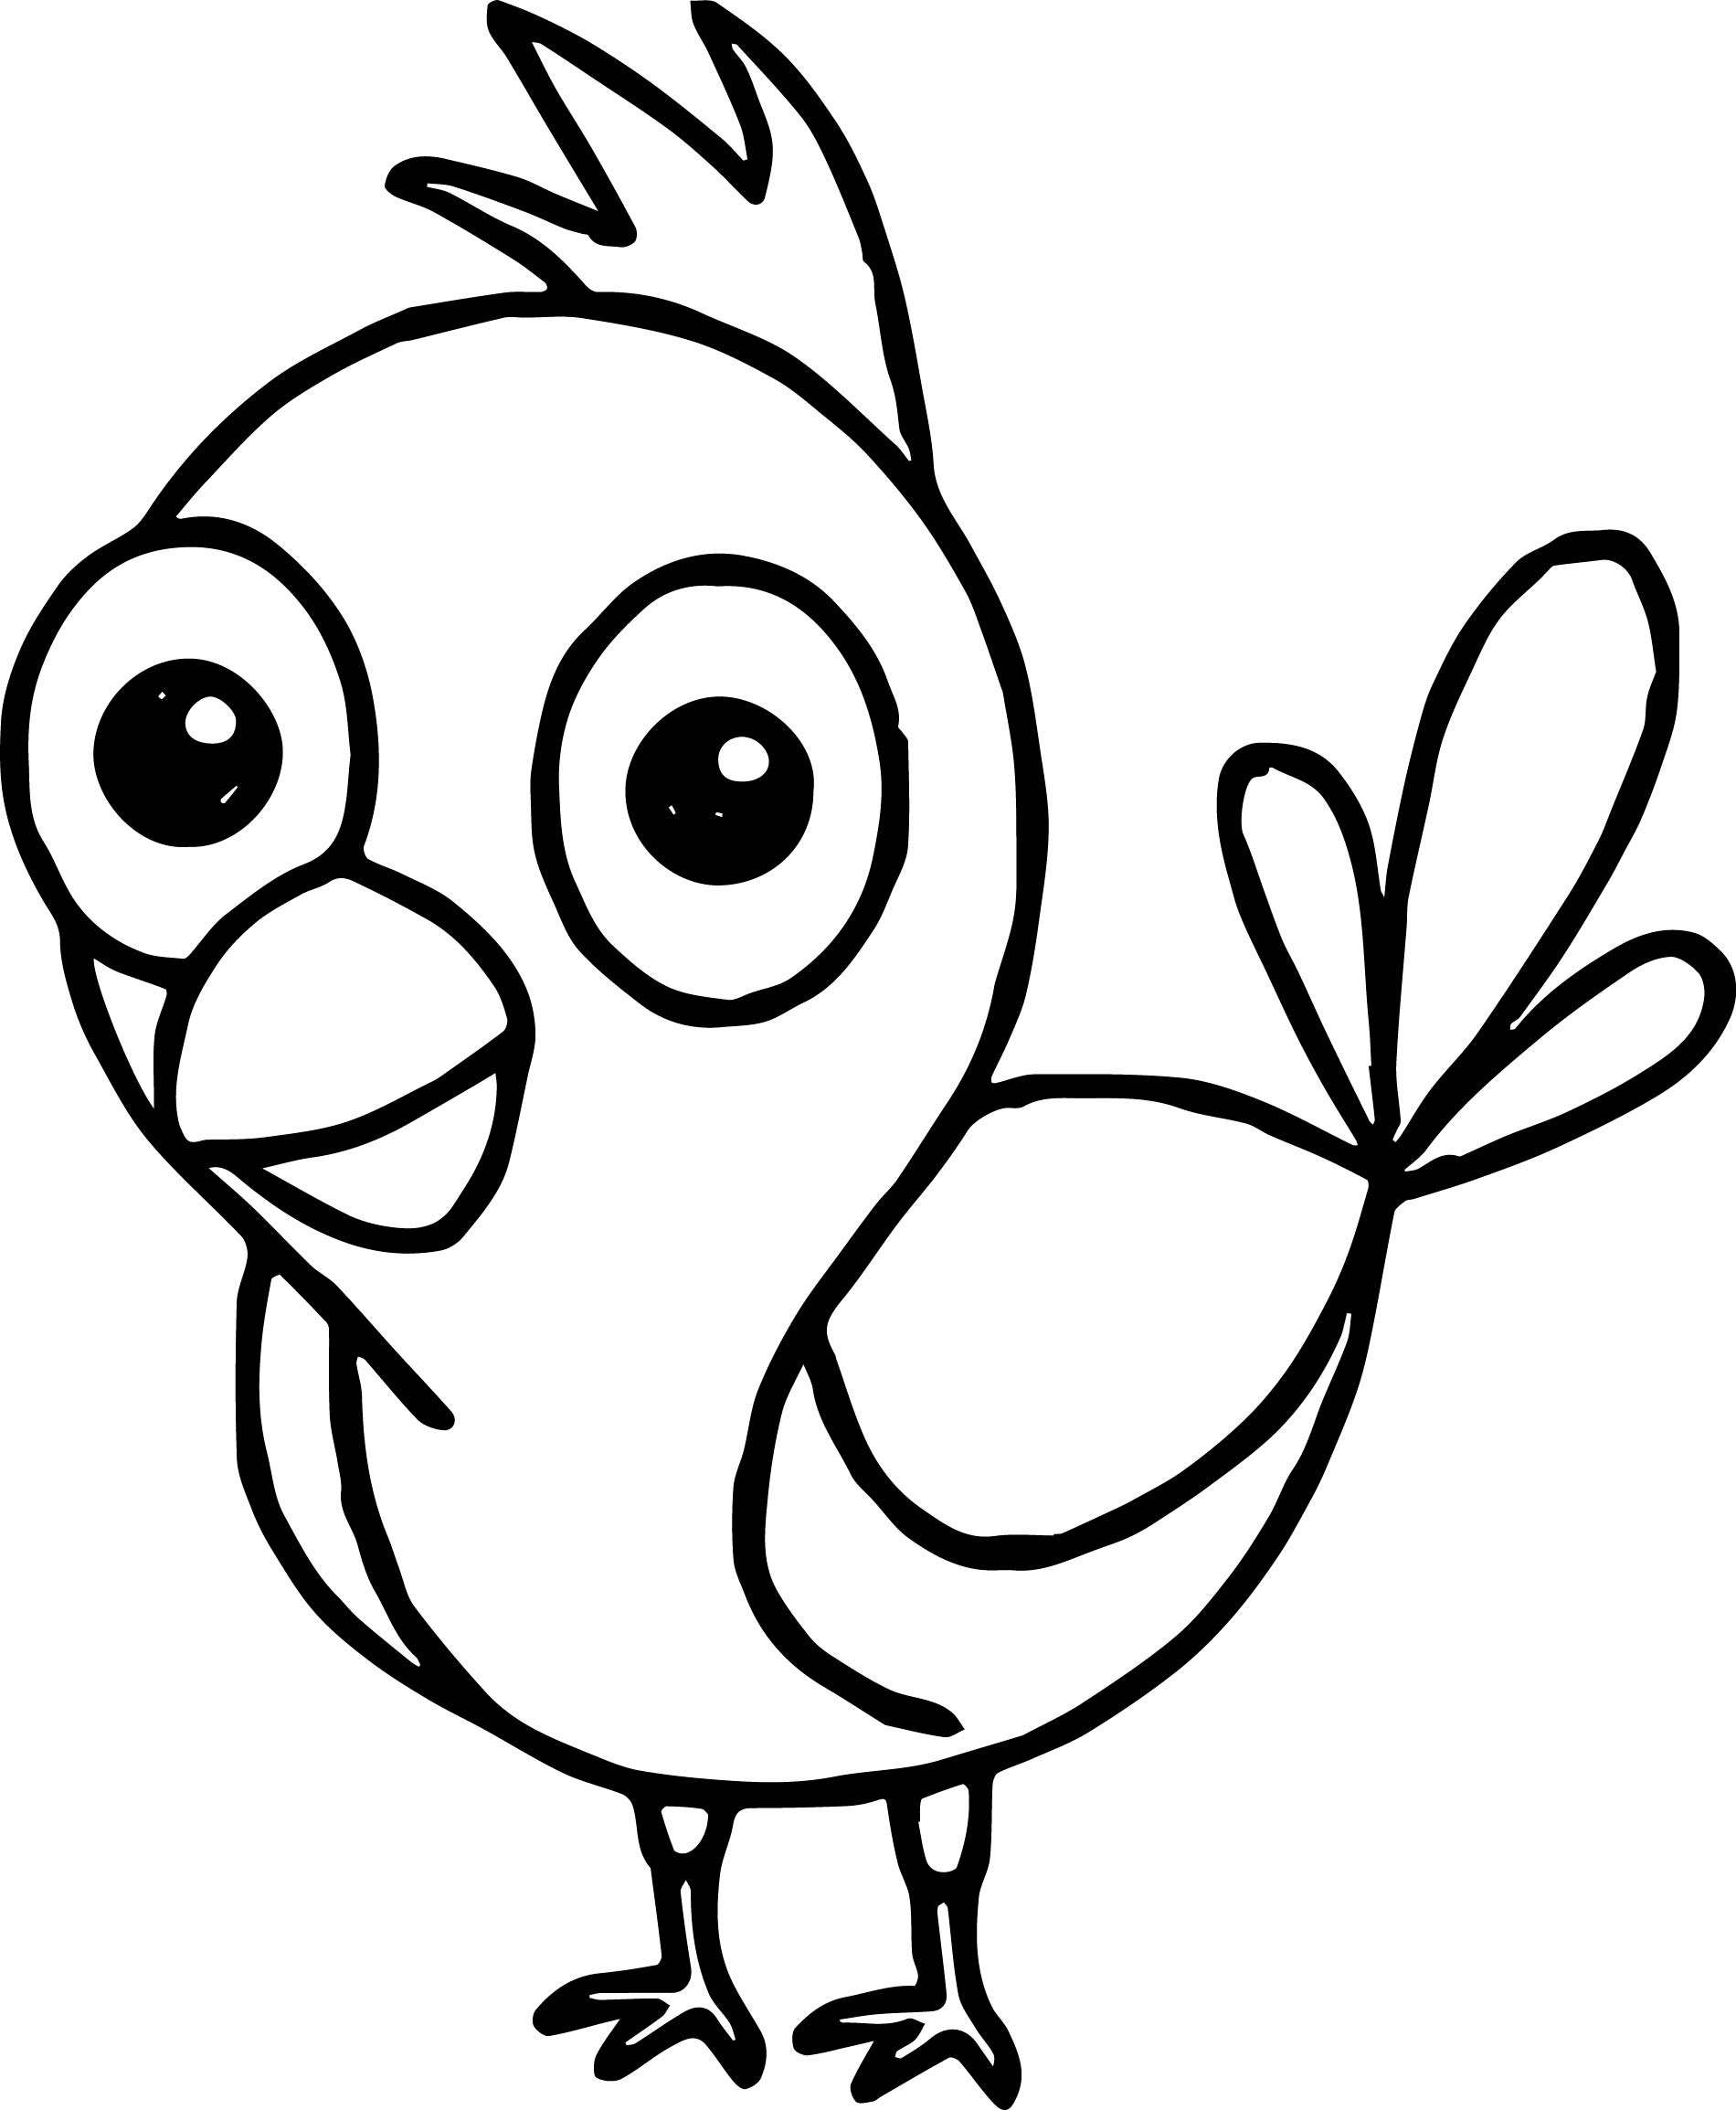 Funny Bird Coloring Page Wecoloringpage Com Coloring Pages